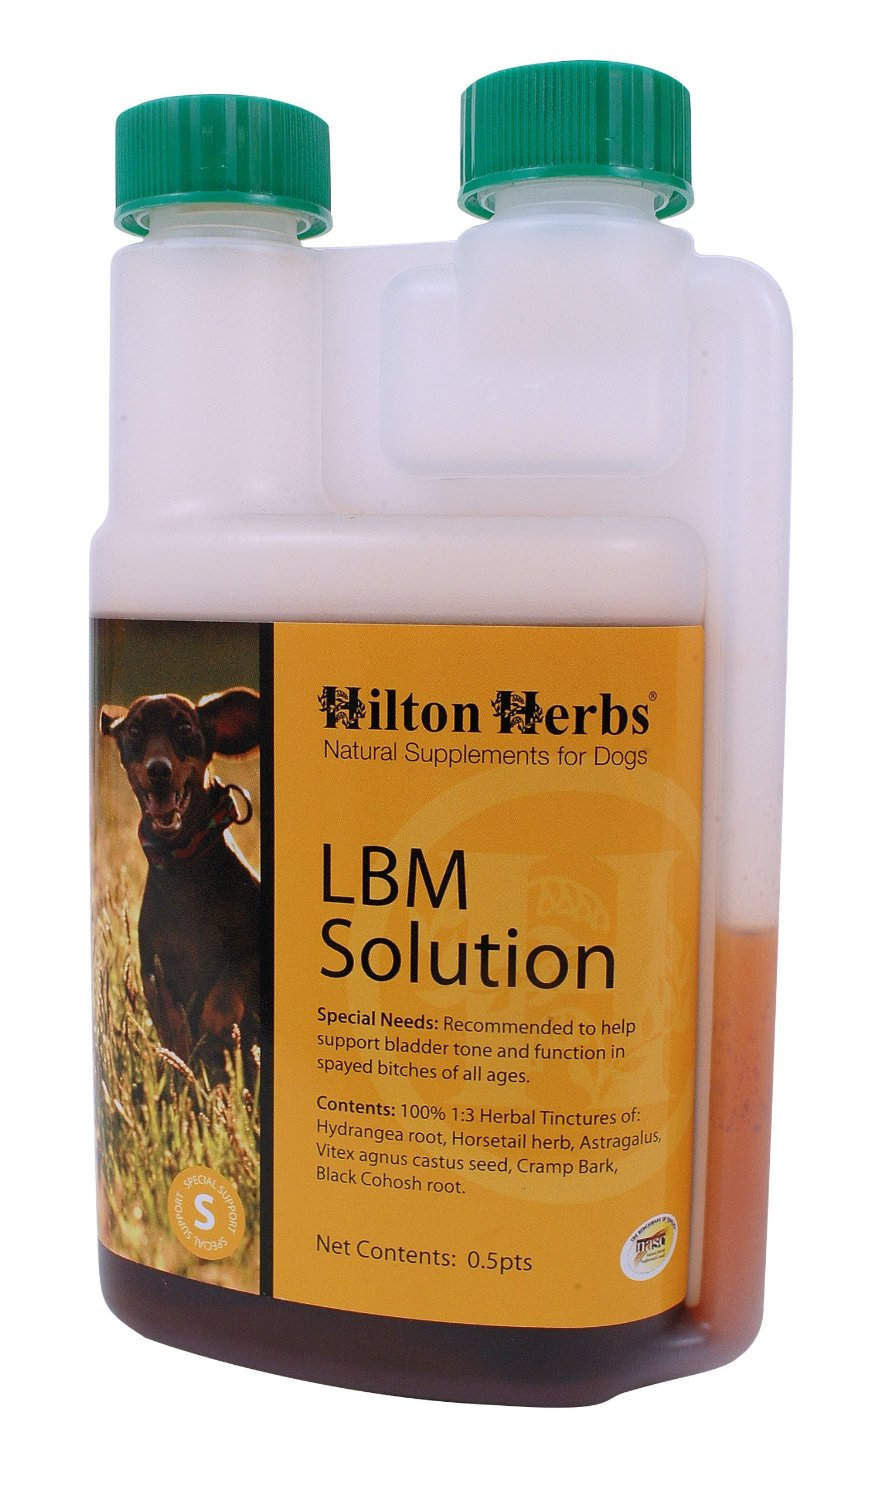 Hilton Herbs LBM Solution for Dogs